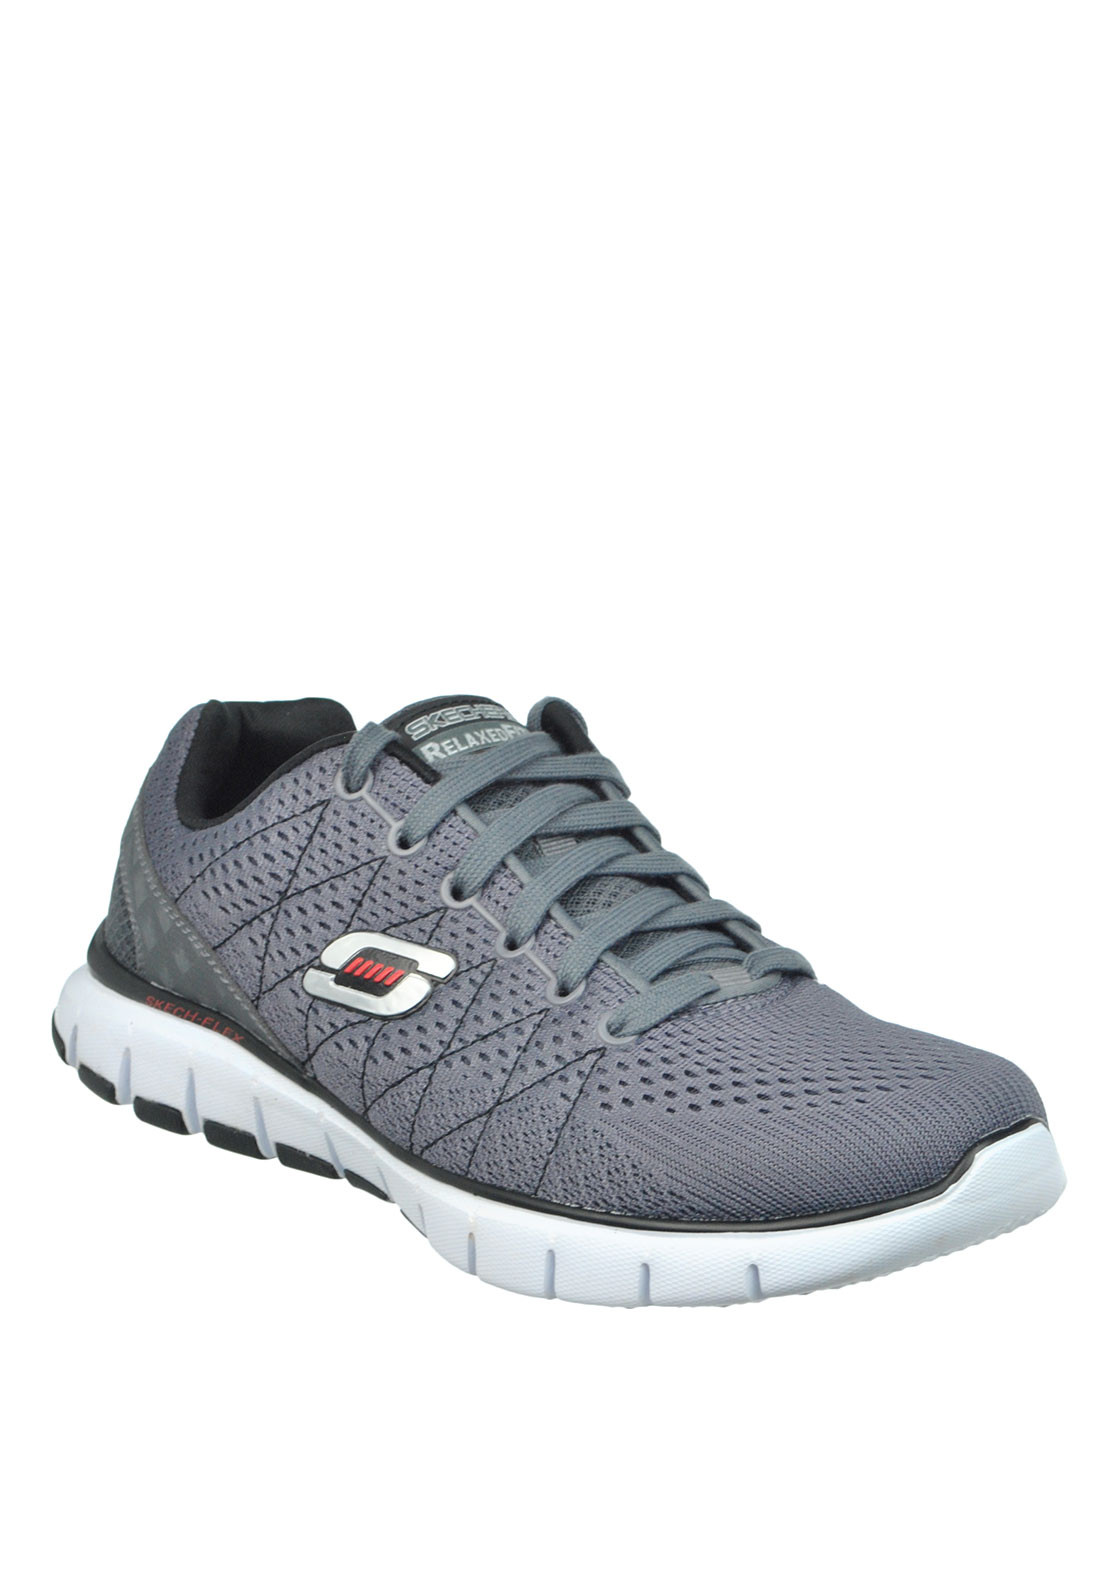 Skechers Mens Relaxed Fit Skech Flex Lace Up Trainer, Charcoal